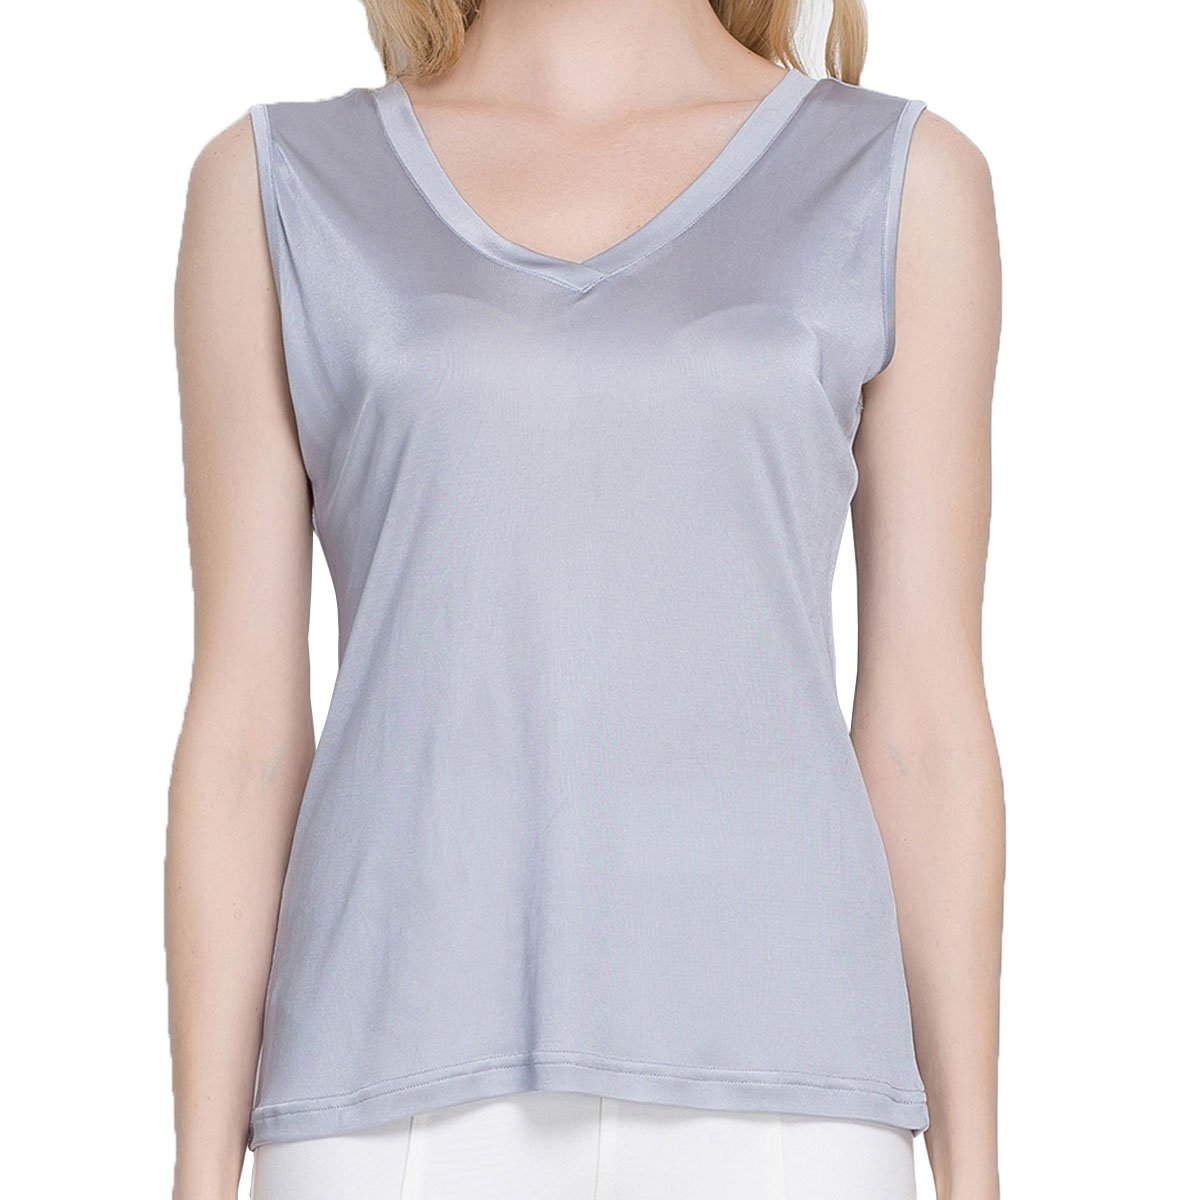 Paradise Silk Pure Silk Knit Women's V Neck Double Side Short Sleeves Top:  Amazon.co.uk: Clothing